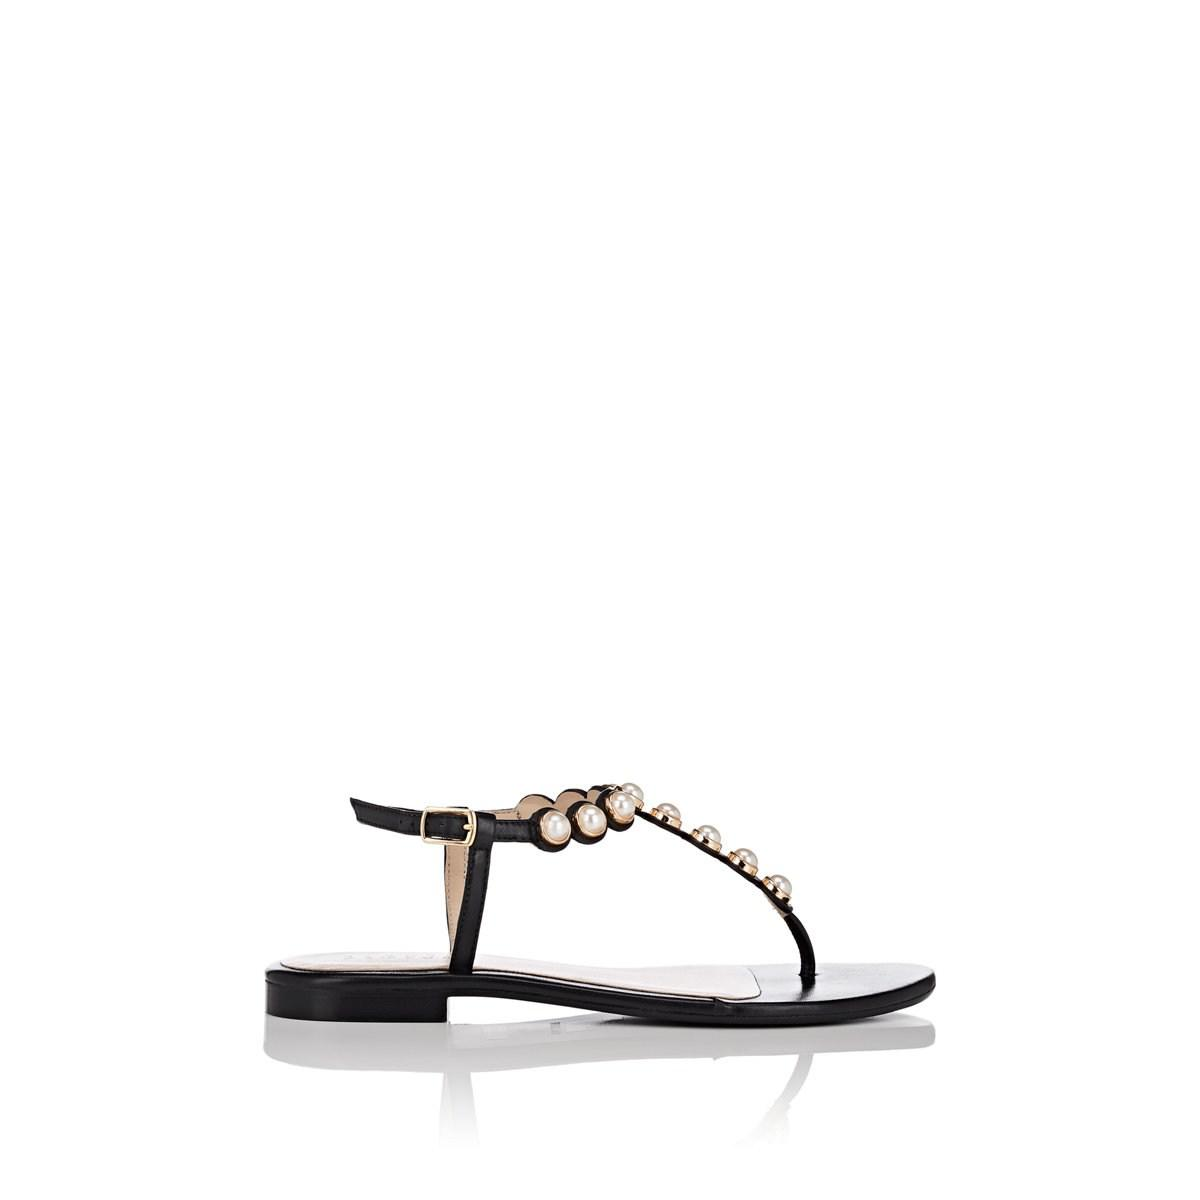 479dc9ed40b9c Lyst - Barneys New York Embellished Thong Sandals in Black